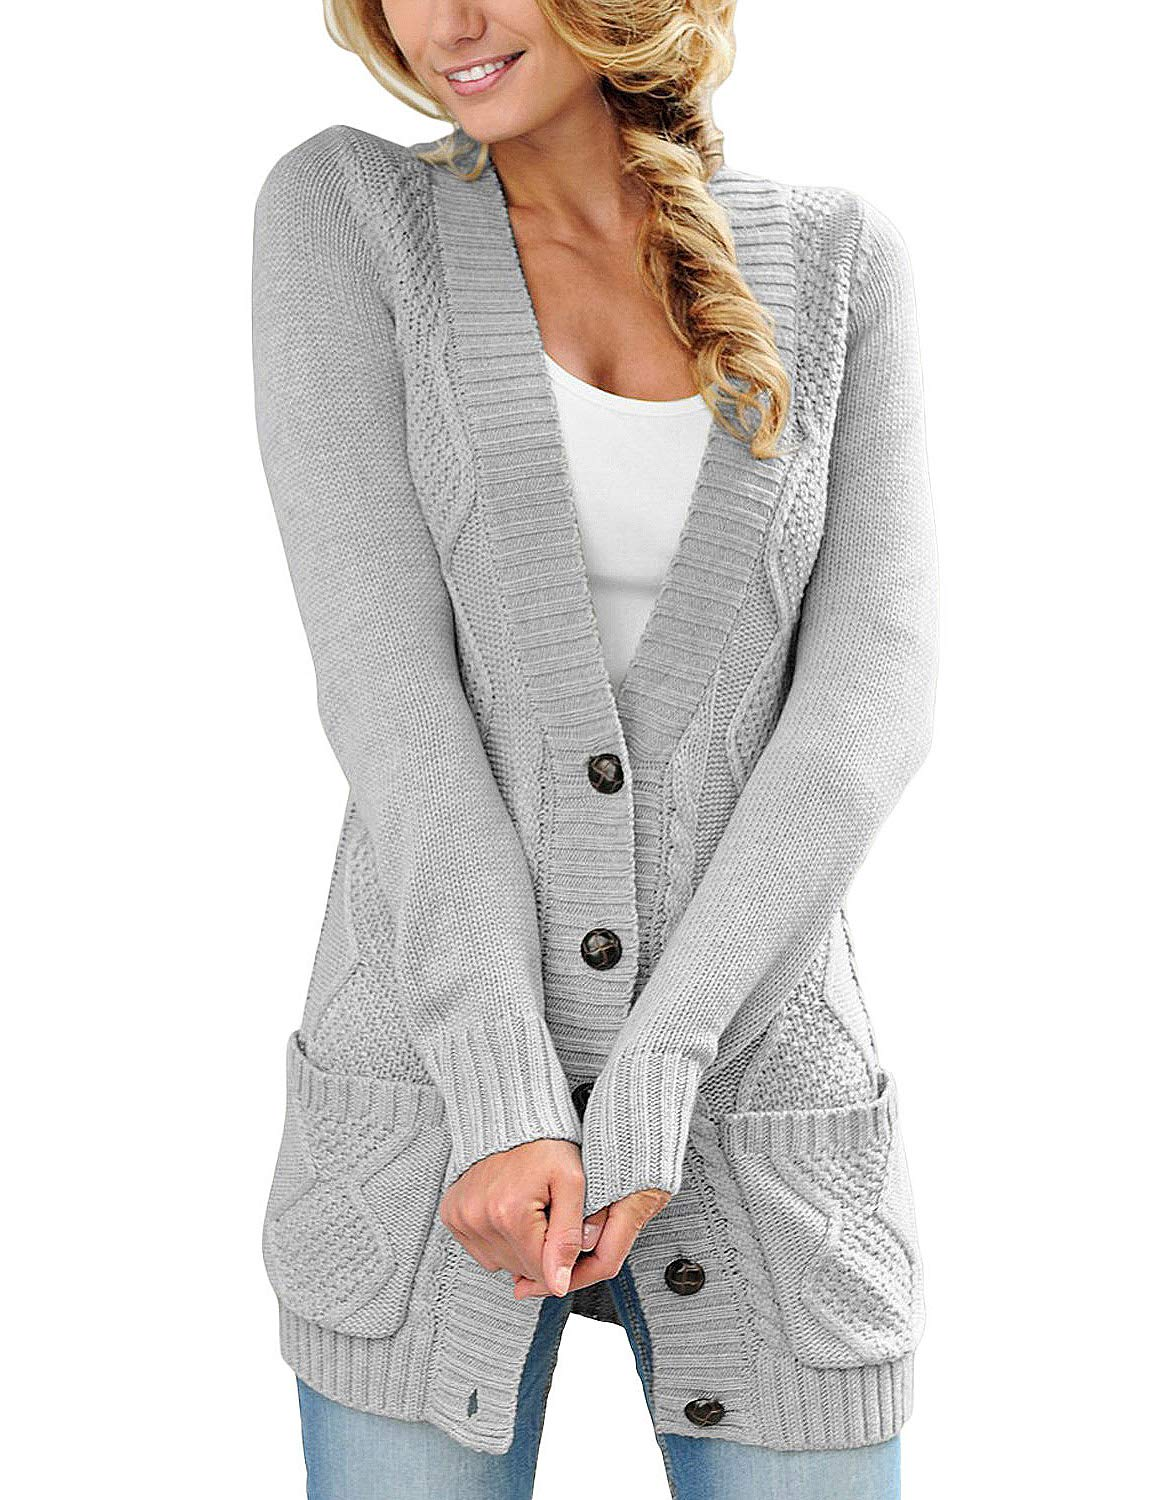 luvamia Womens Grey Casual Long Sleeve Open Front Buttons Cable Knit Pocket Sweater Cardigan Outwear Size L(US 12-14)